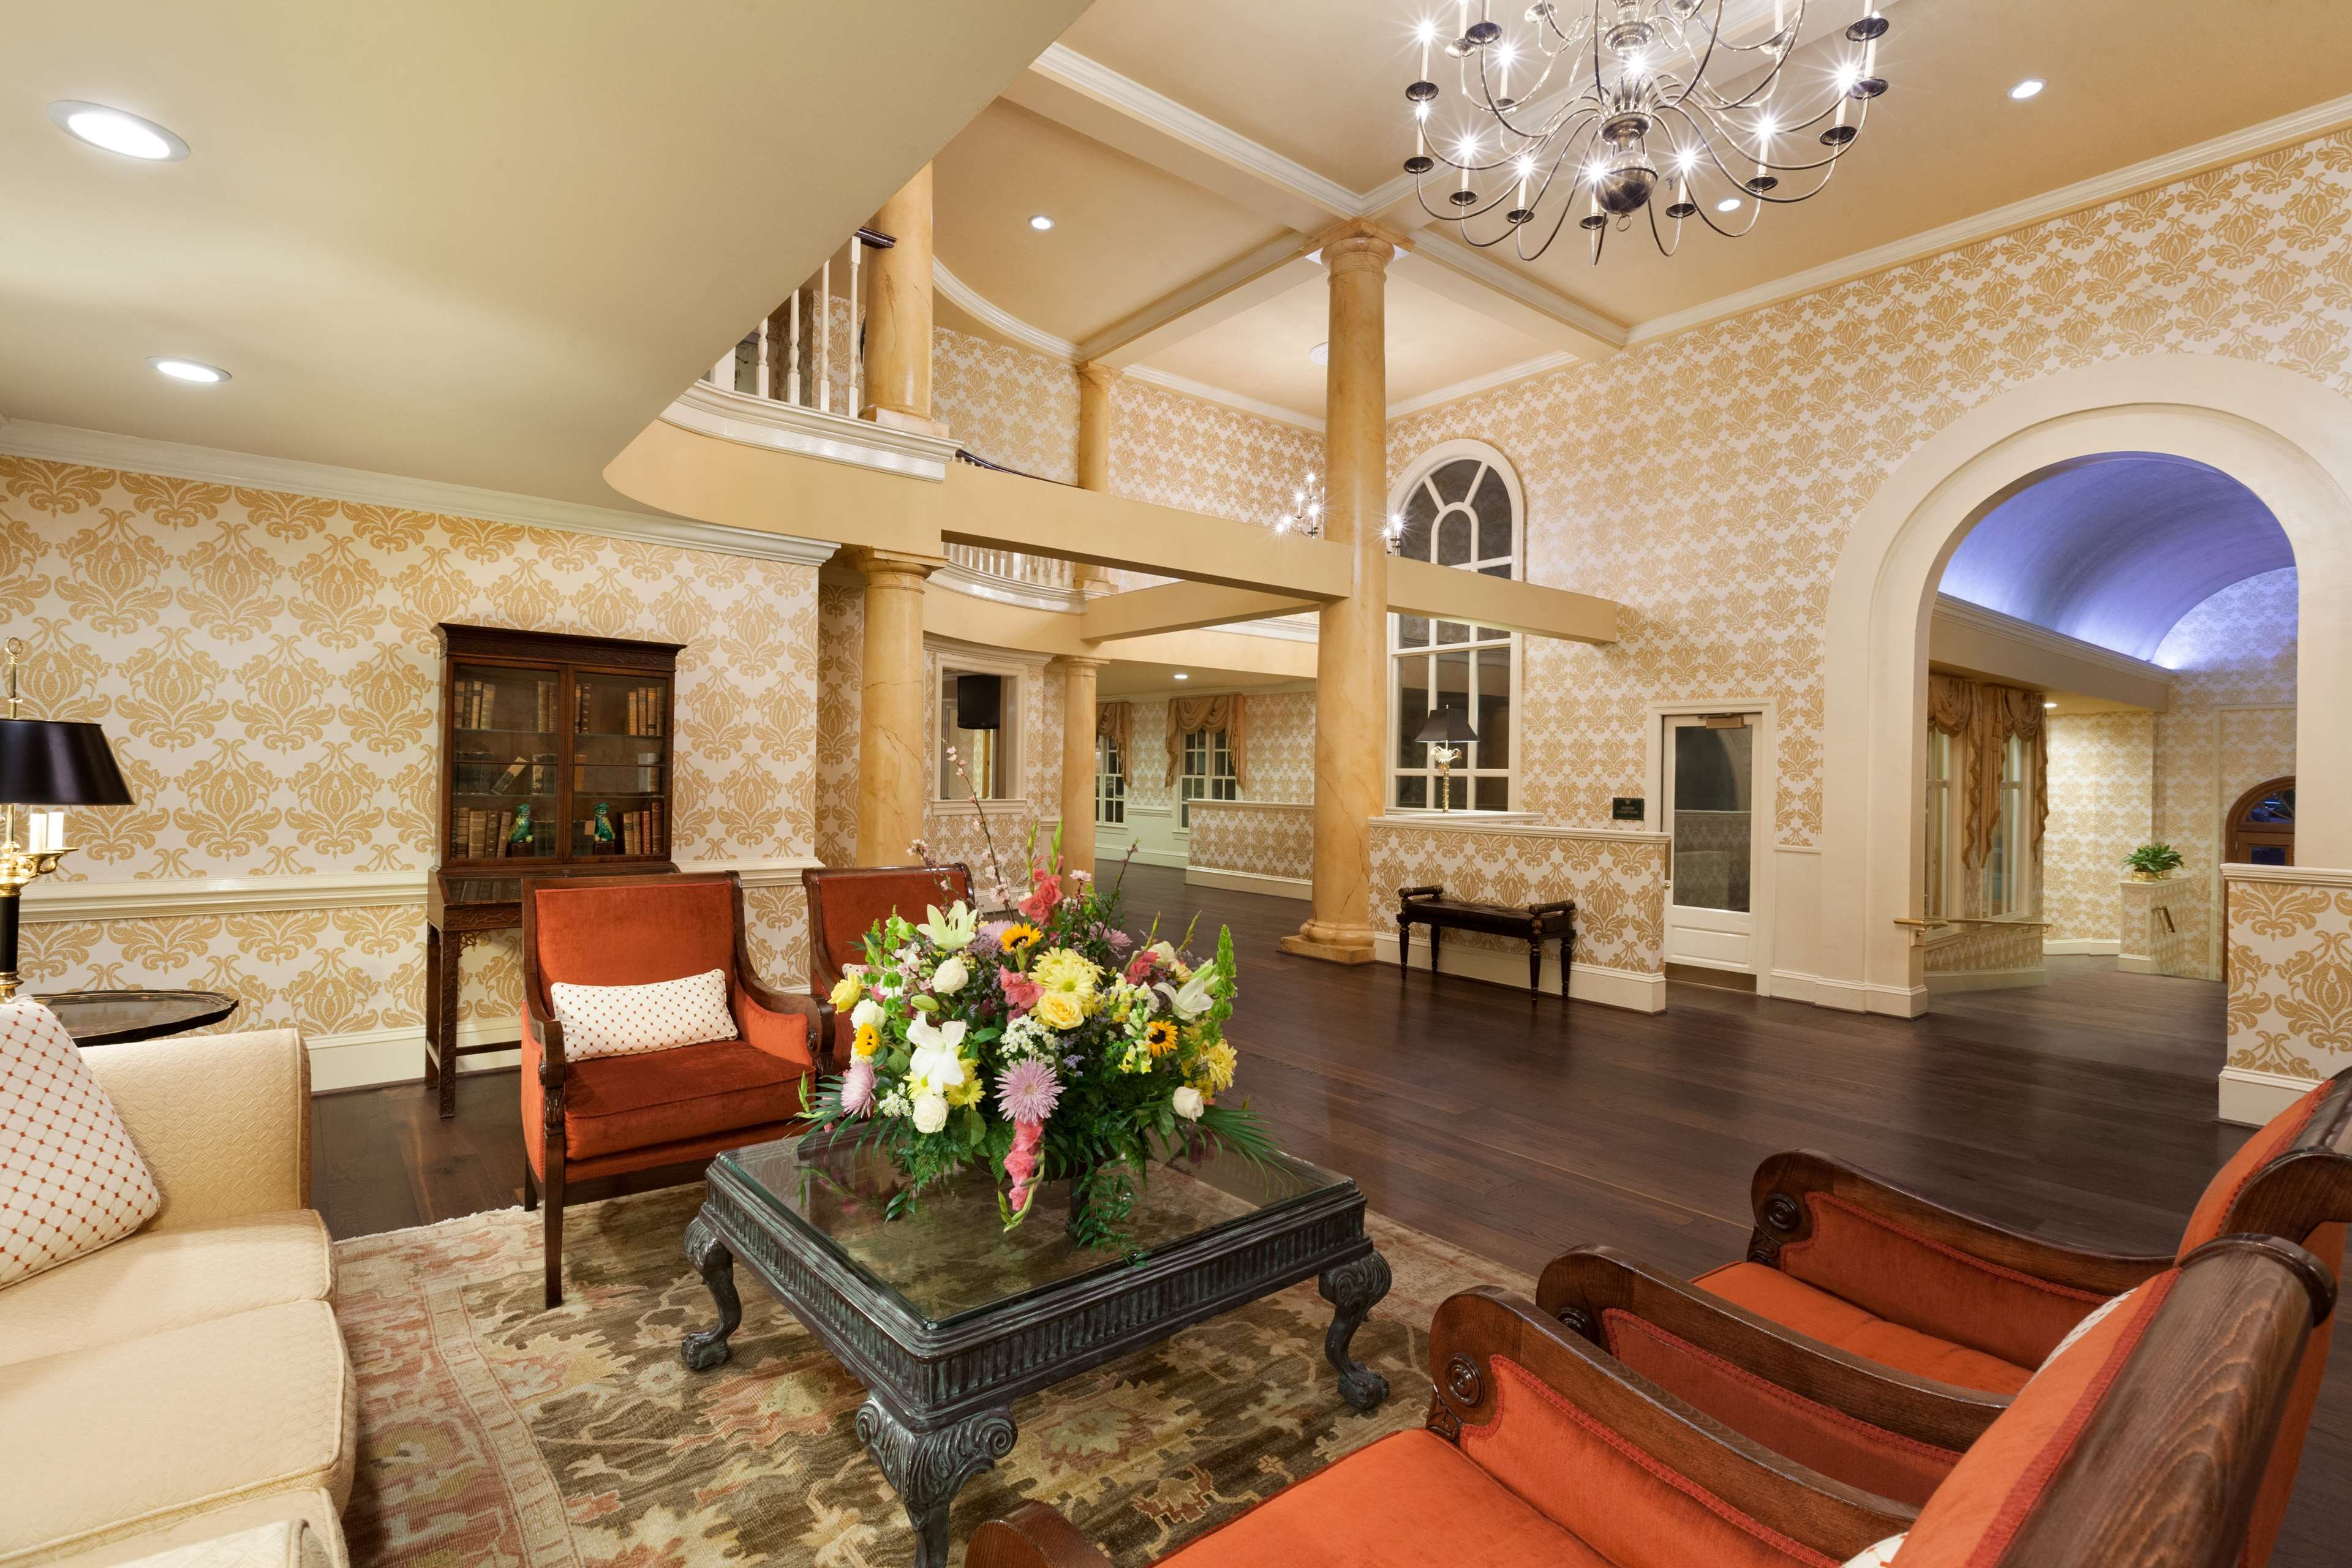 DoubleTree by Hilton Hotel & Suites Charleston - Historic District image 6